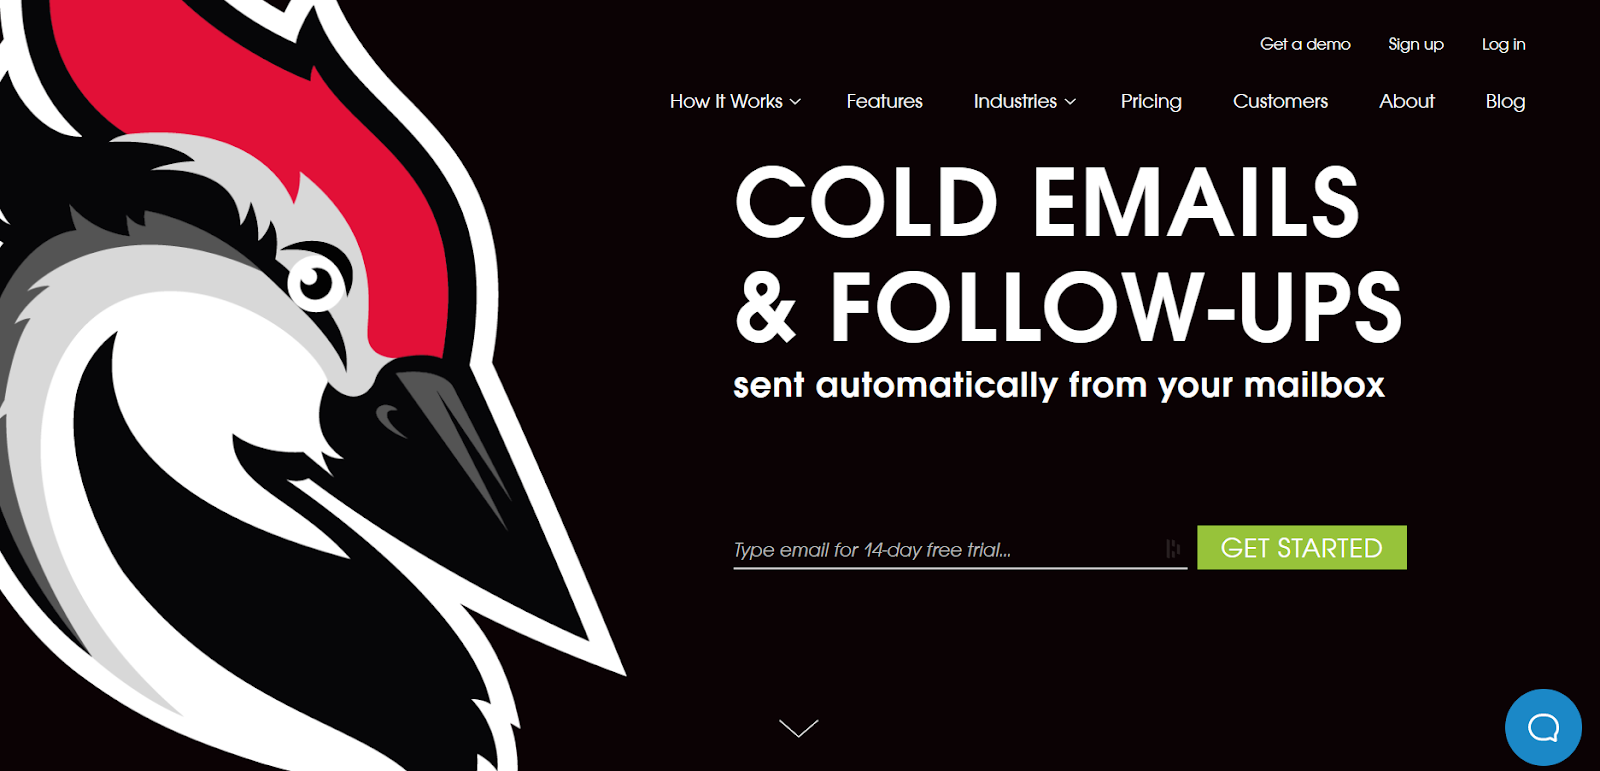 lead generation tools for cold email